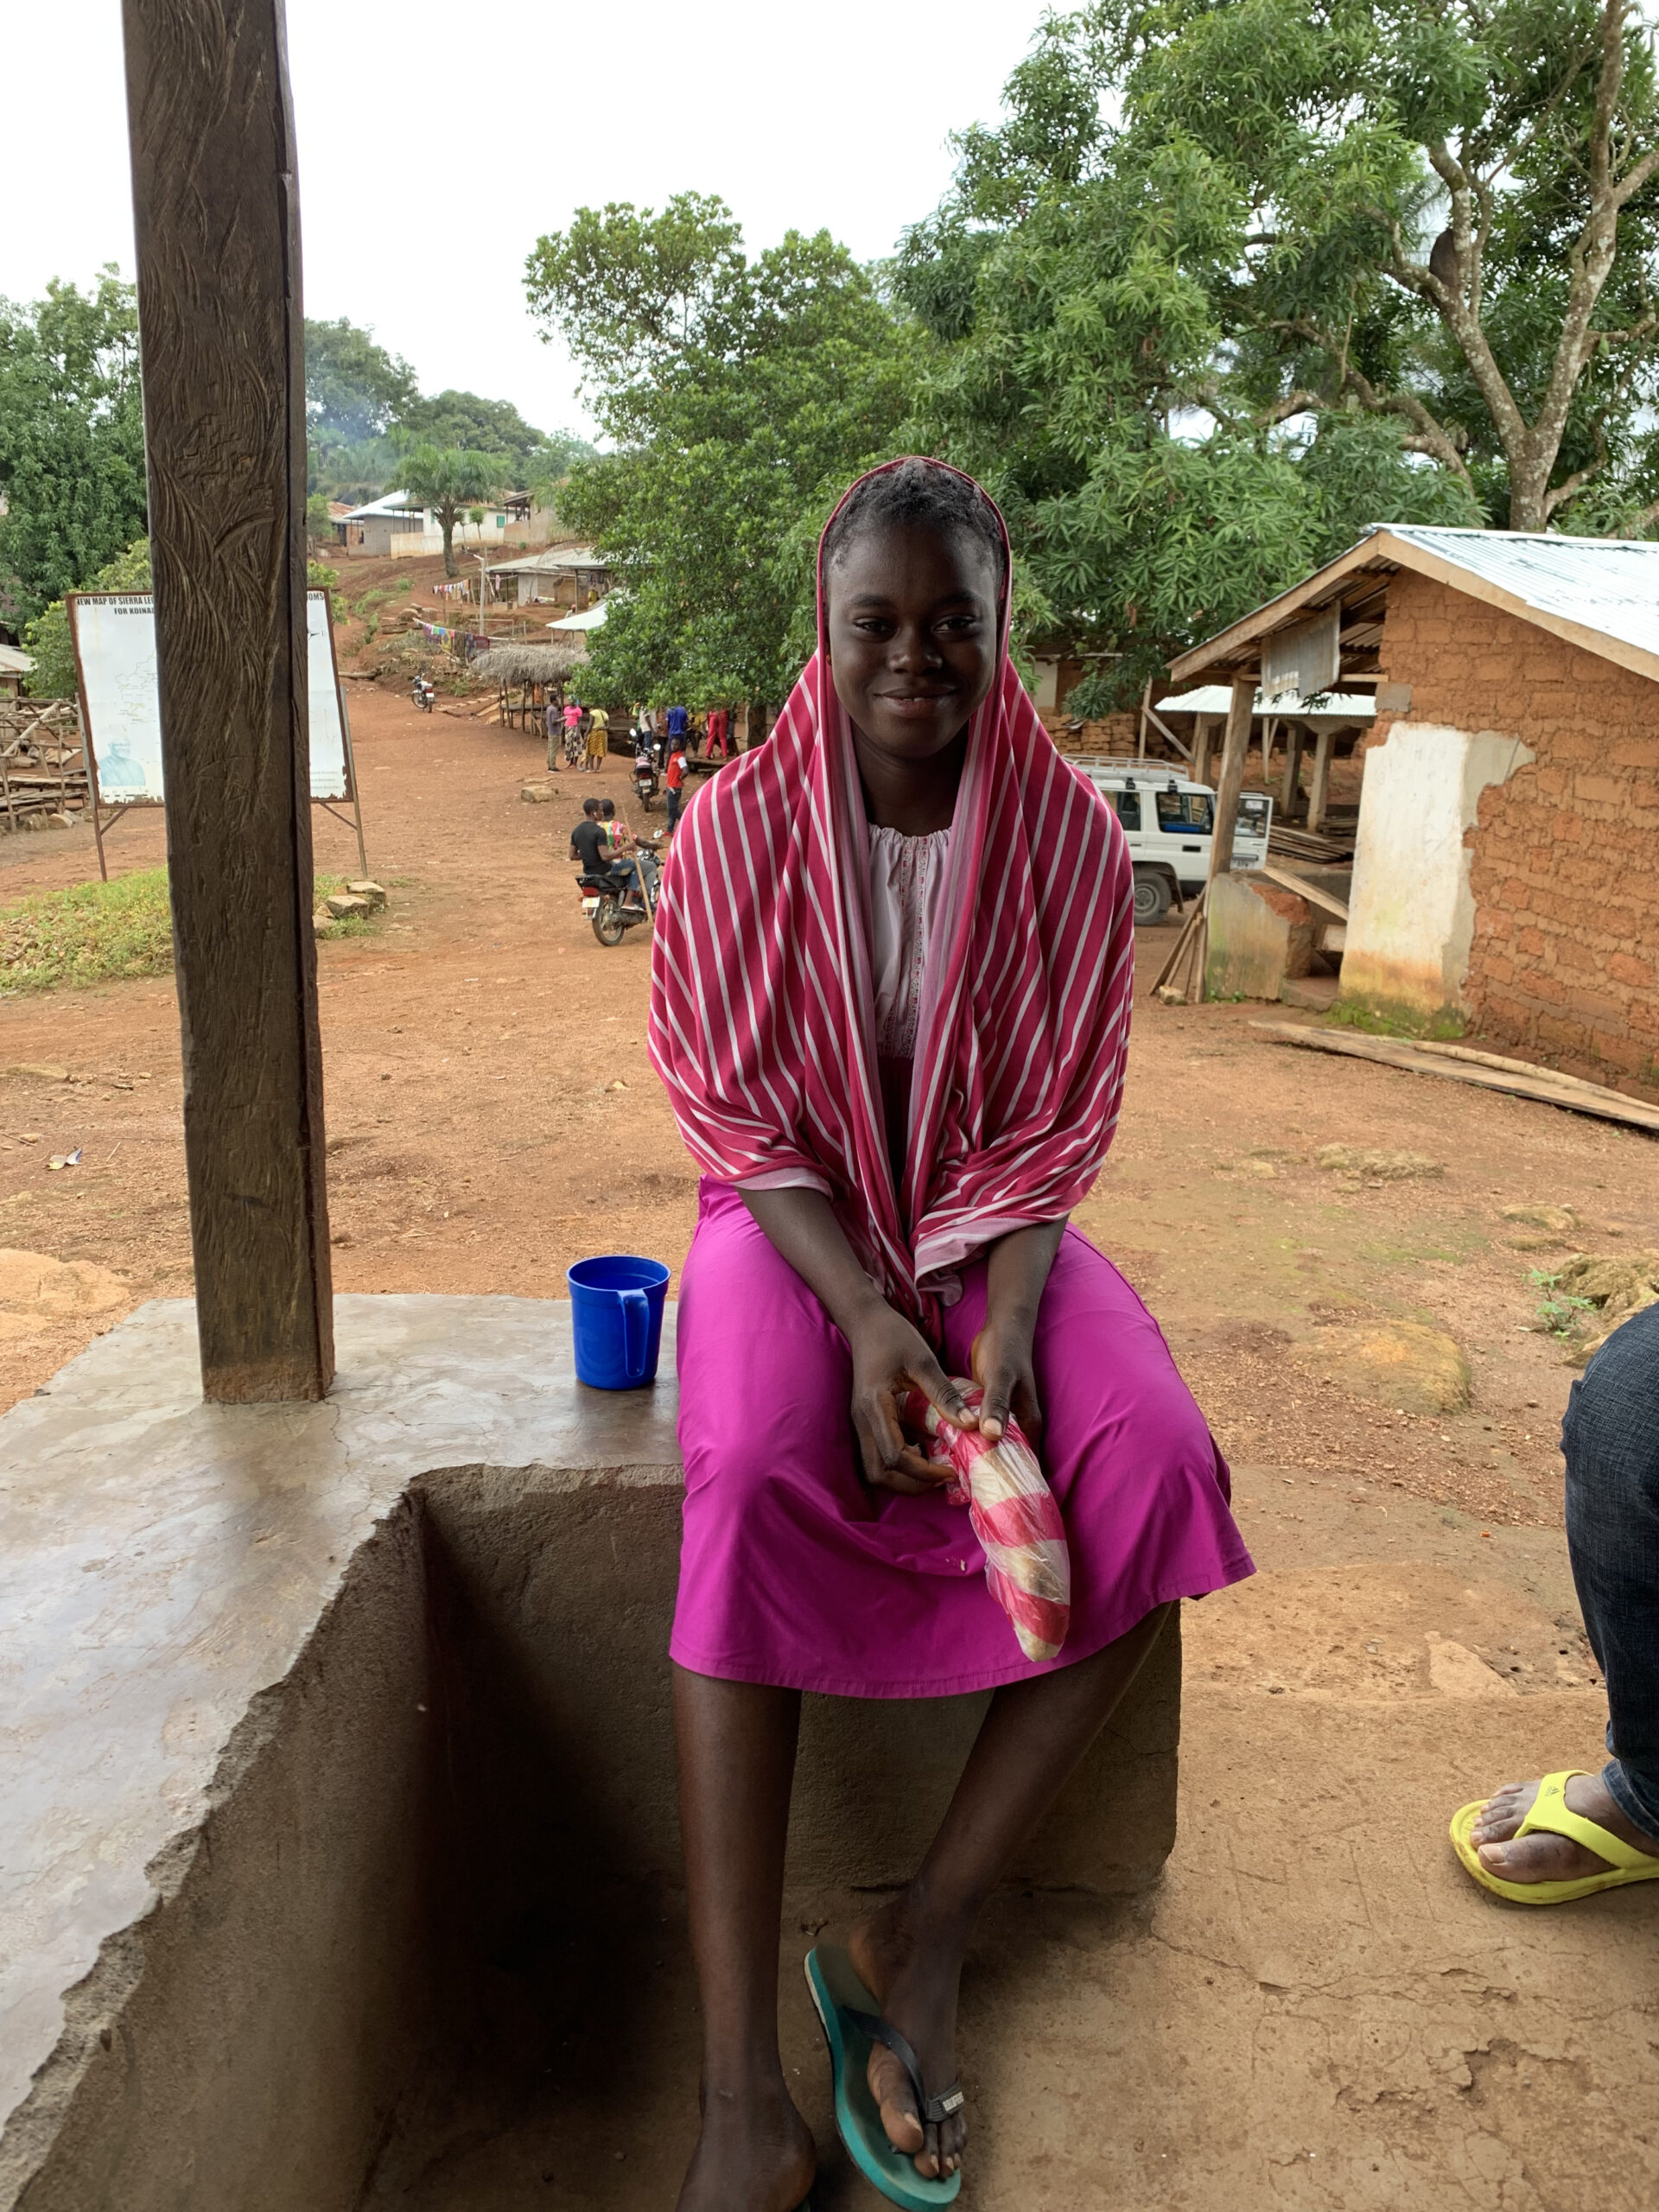 SIERRA LEONE | AUG. 23, 2021 — Christian Woman's Sewing Supplies Stolen by Family